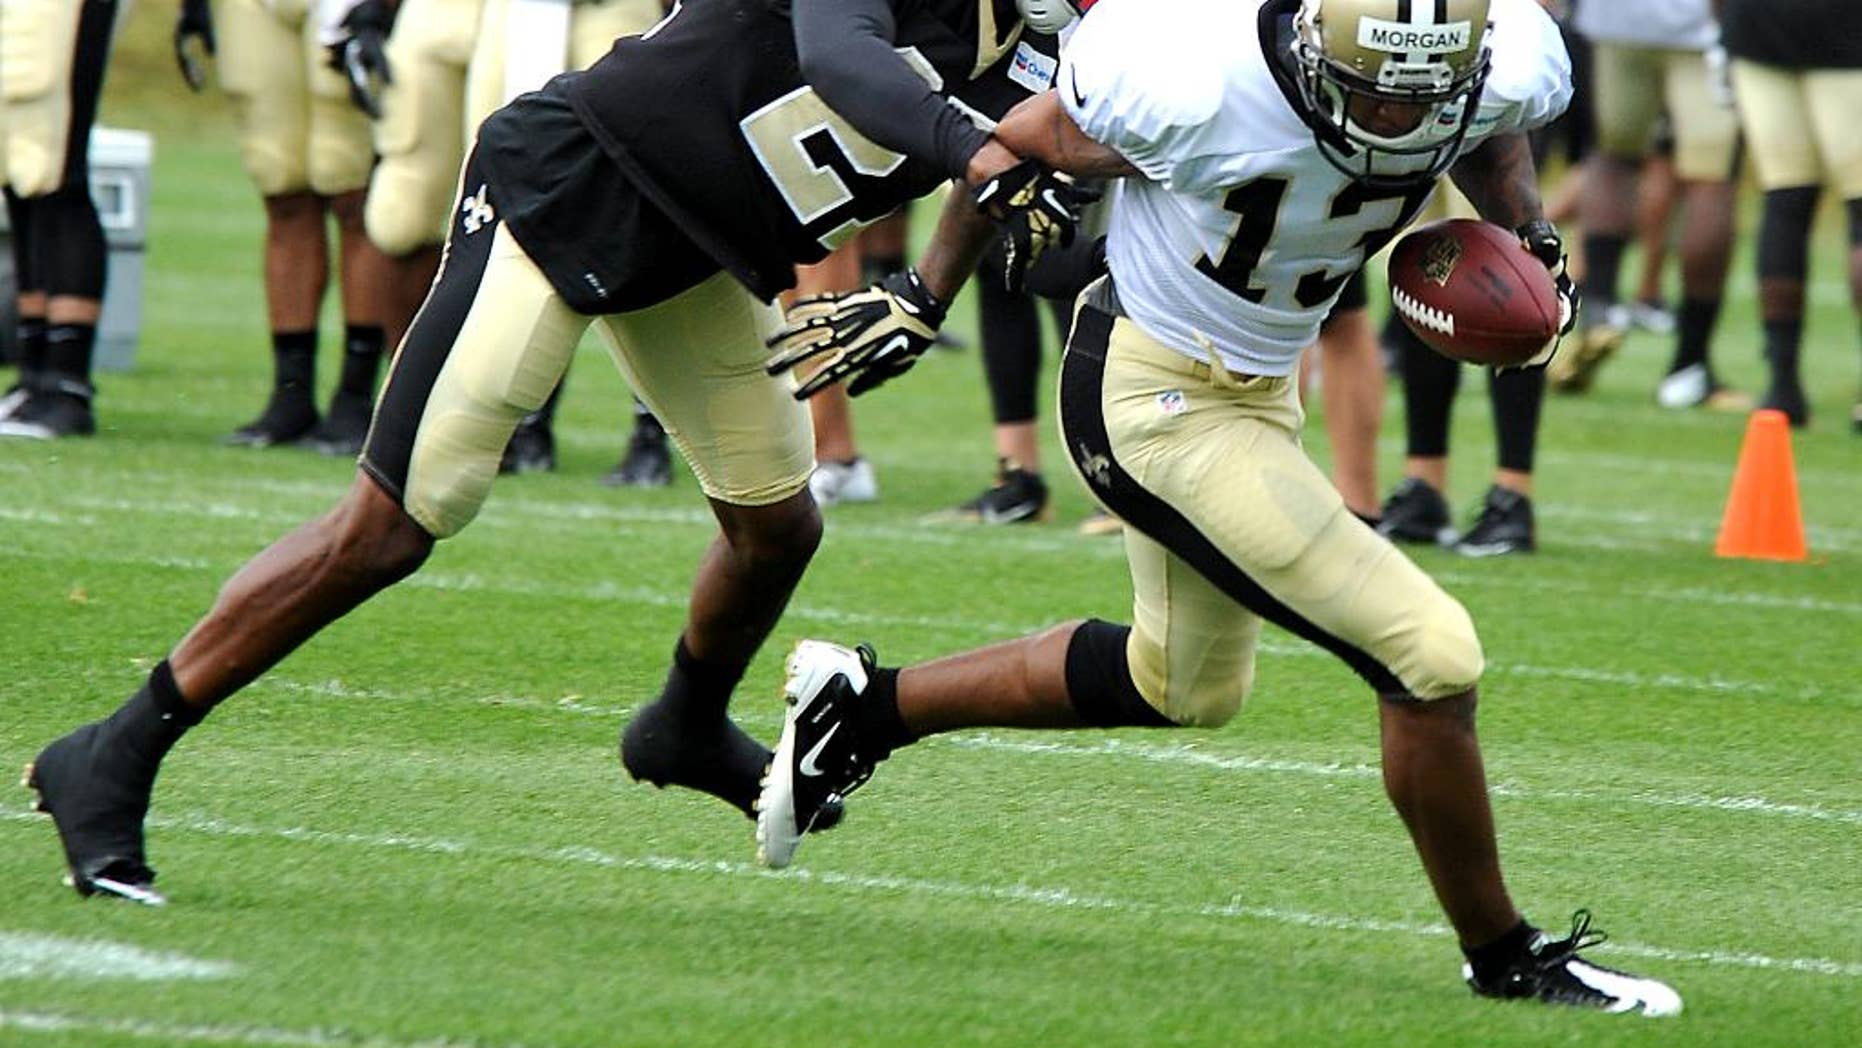 New Orleans Saints' Jairus Byrd (31) catches a pass during NFL football training camp in White Sulphur Springs, W. Va., Friday, July 25, 2014. (AP Photo/Chris Tilley)